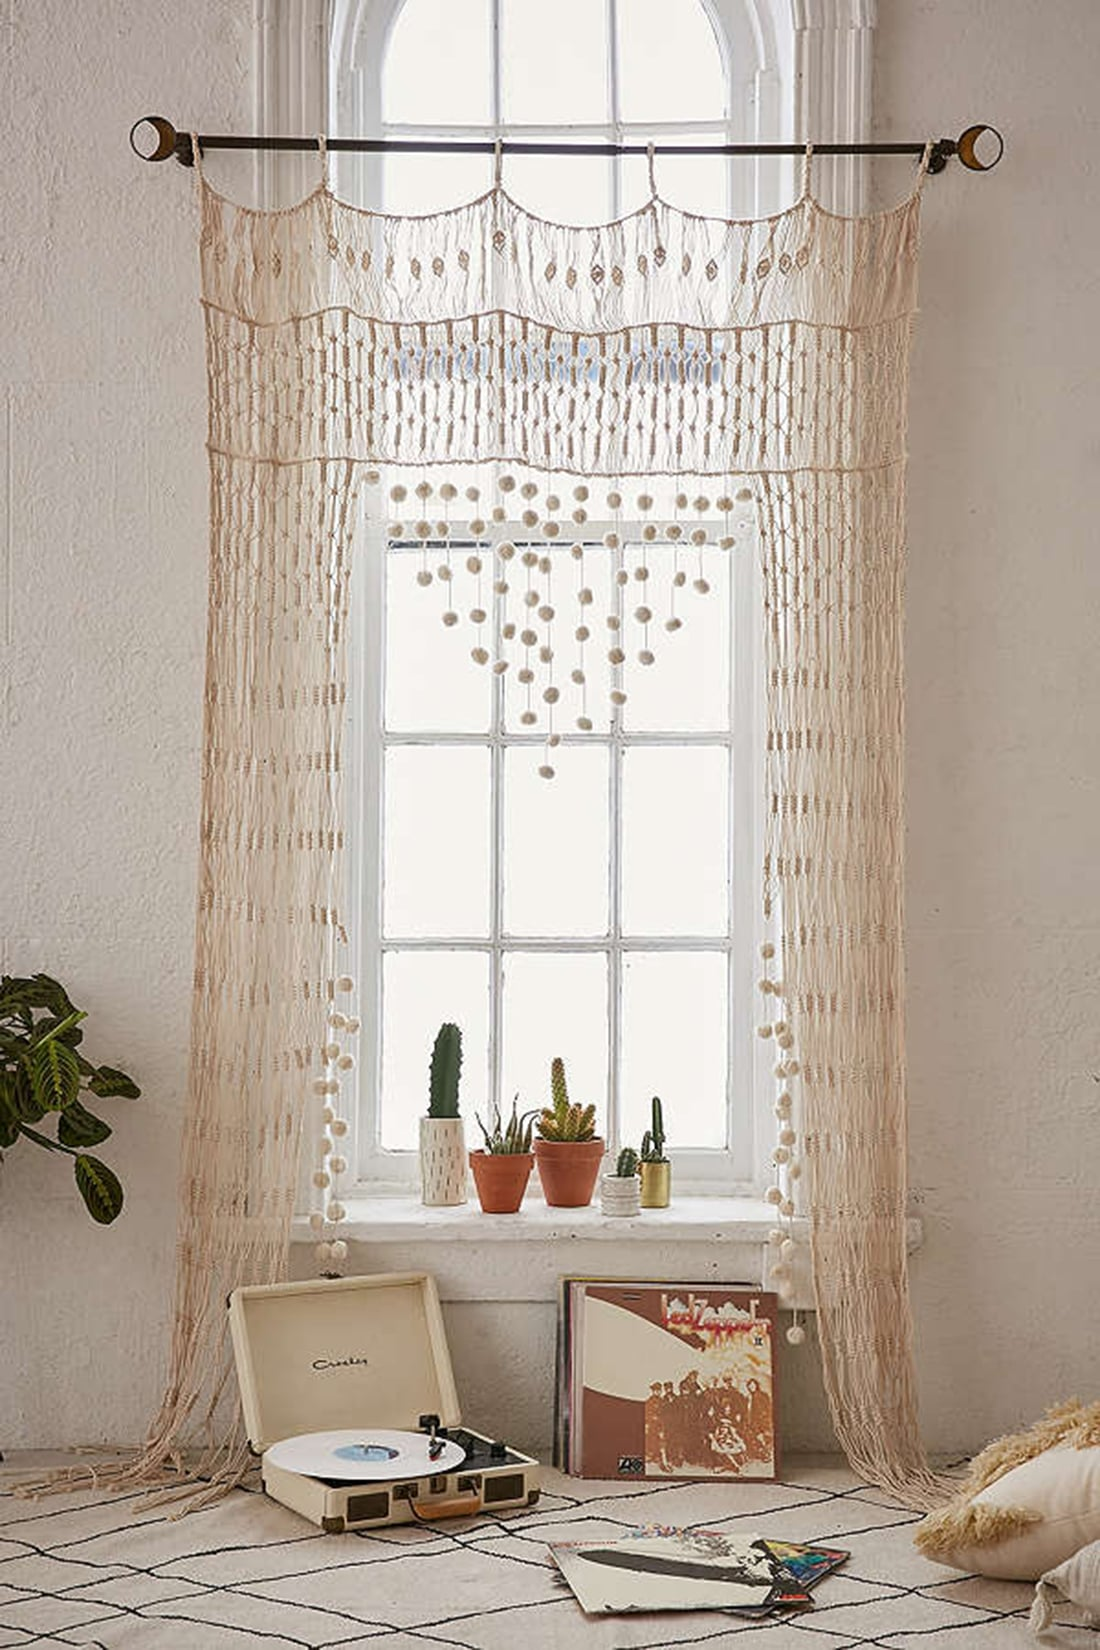 boho decor 7 signs it s the right home style for you little gold